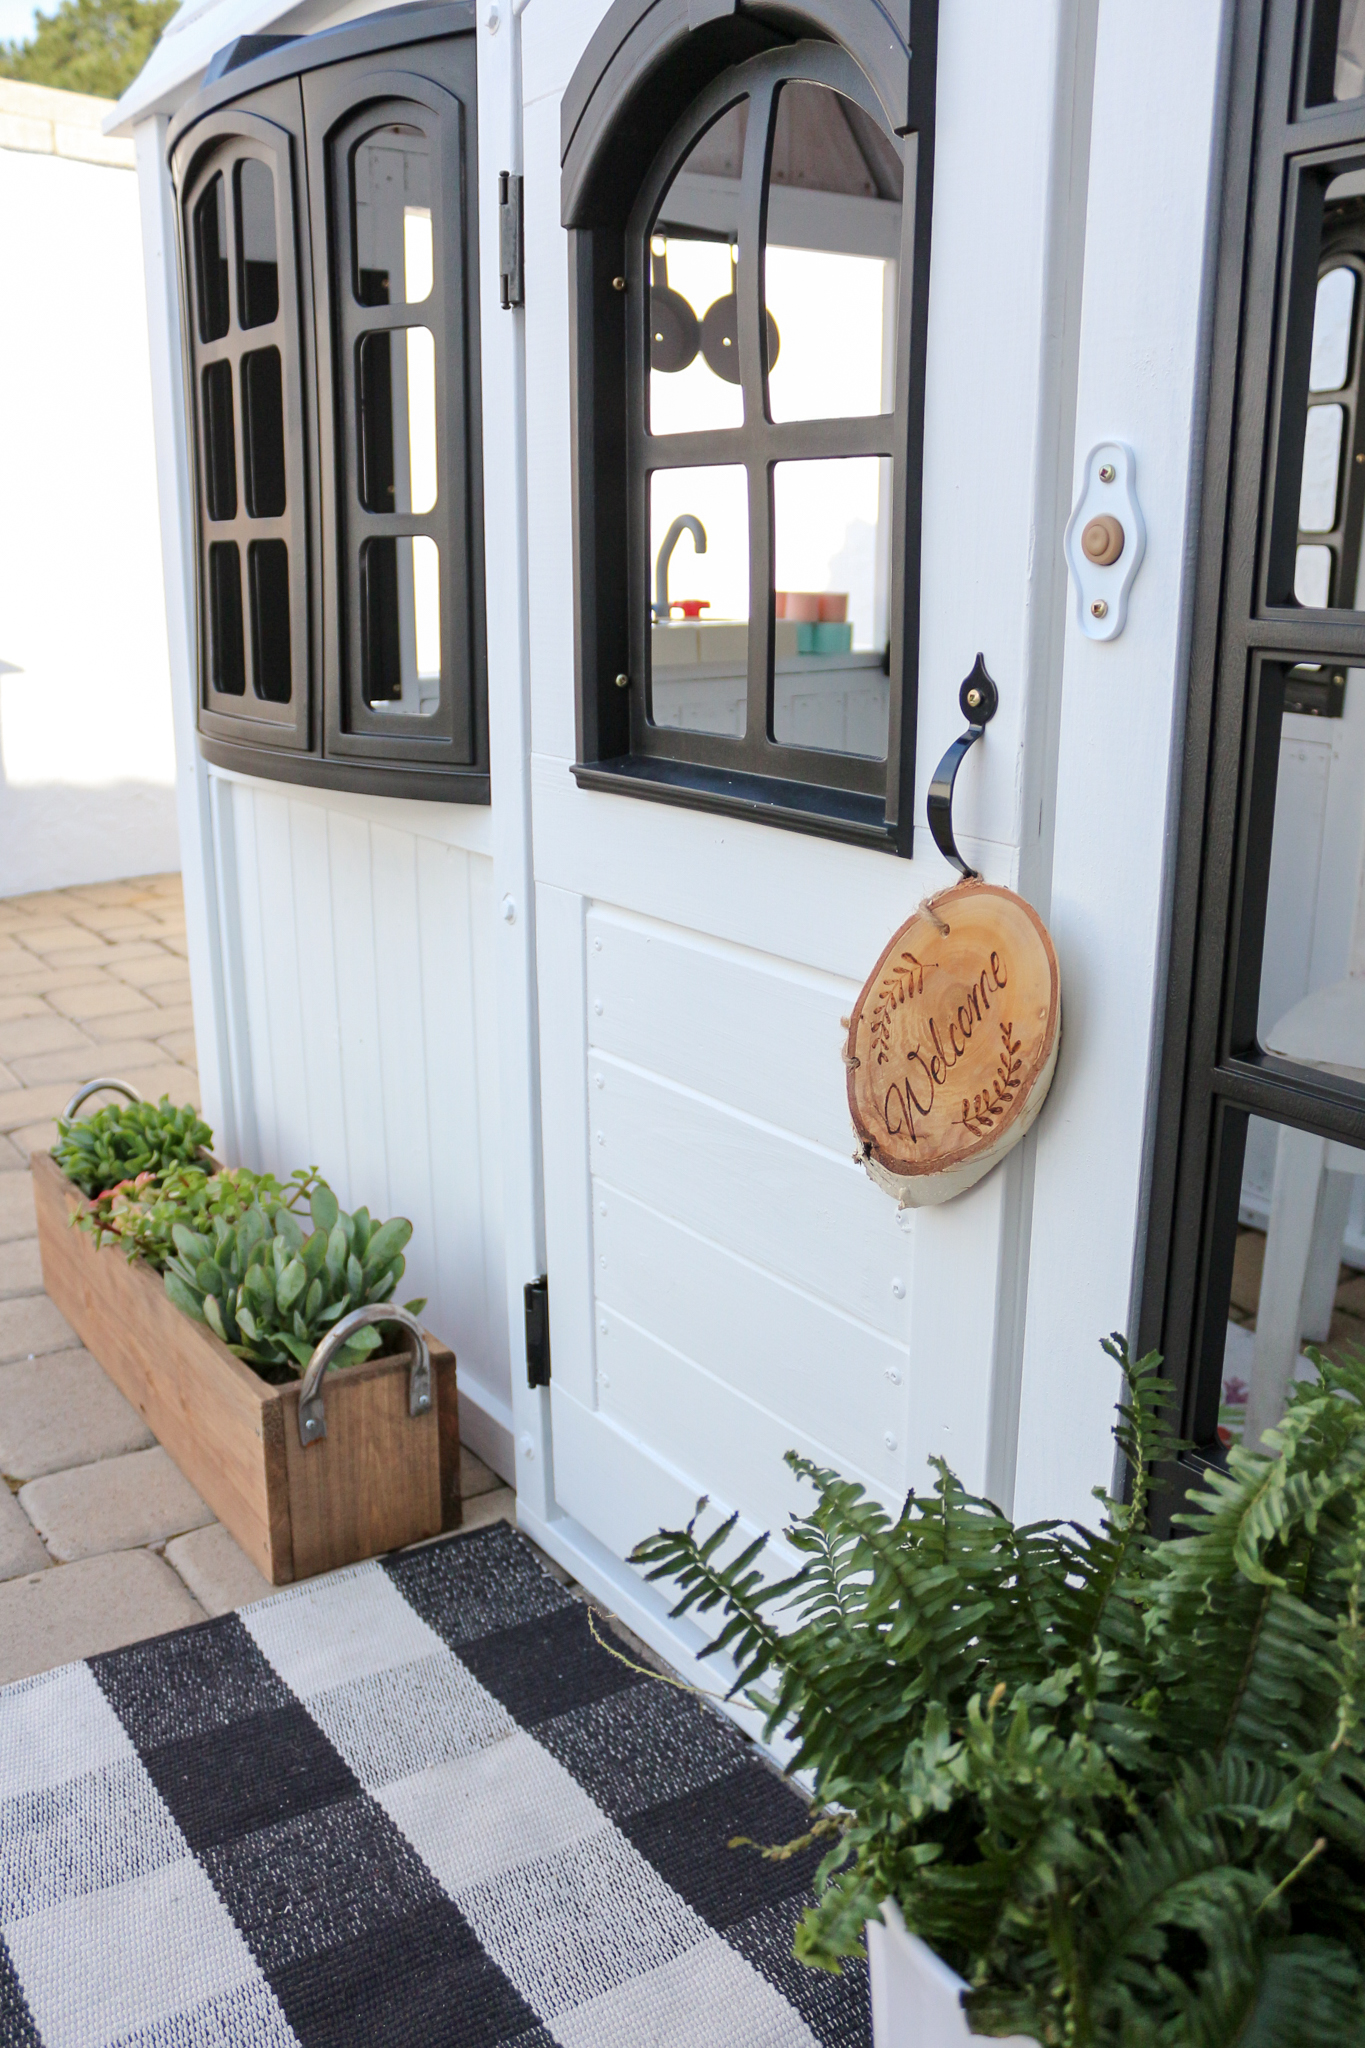 I Folded A Cute Buffalo Check Black And White Rug To Make It Fit In Front  Of The Playhouse Door And Added A Cute Wooden Welcome Sign To The Front Door .